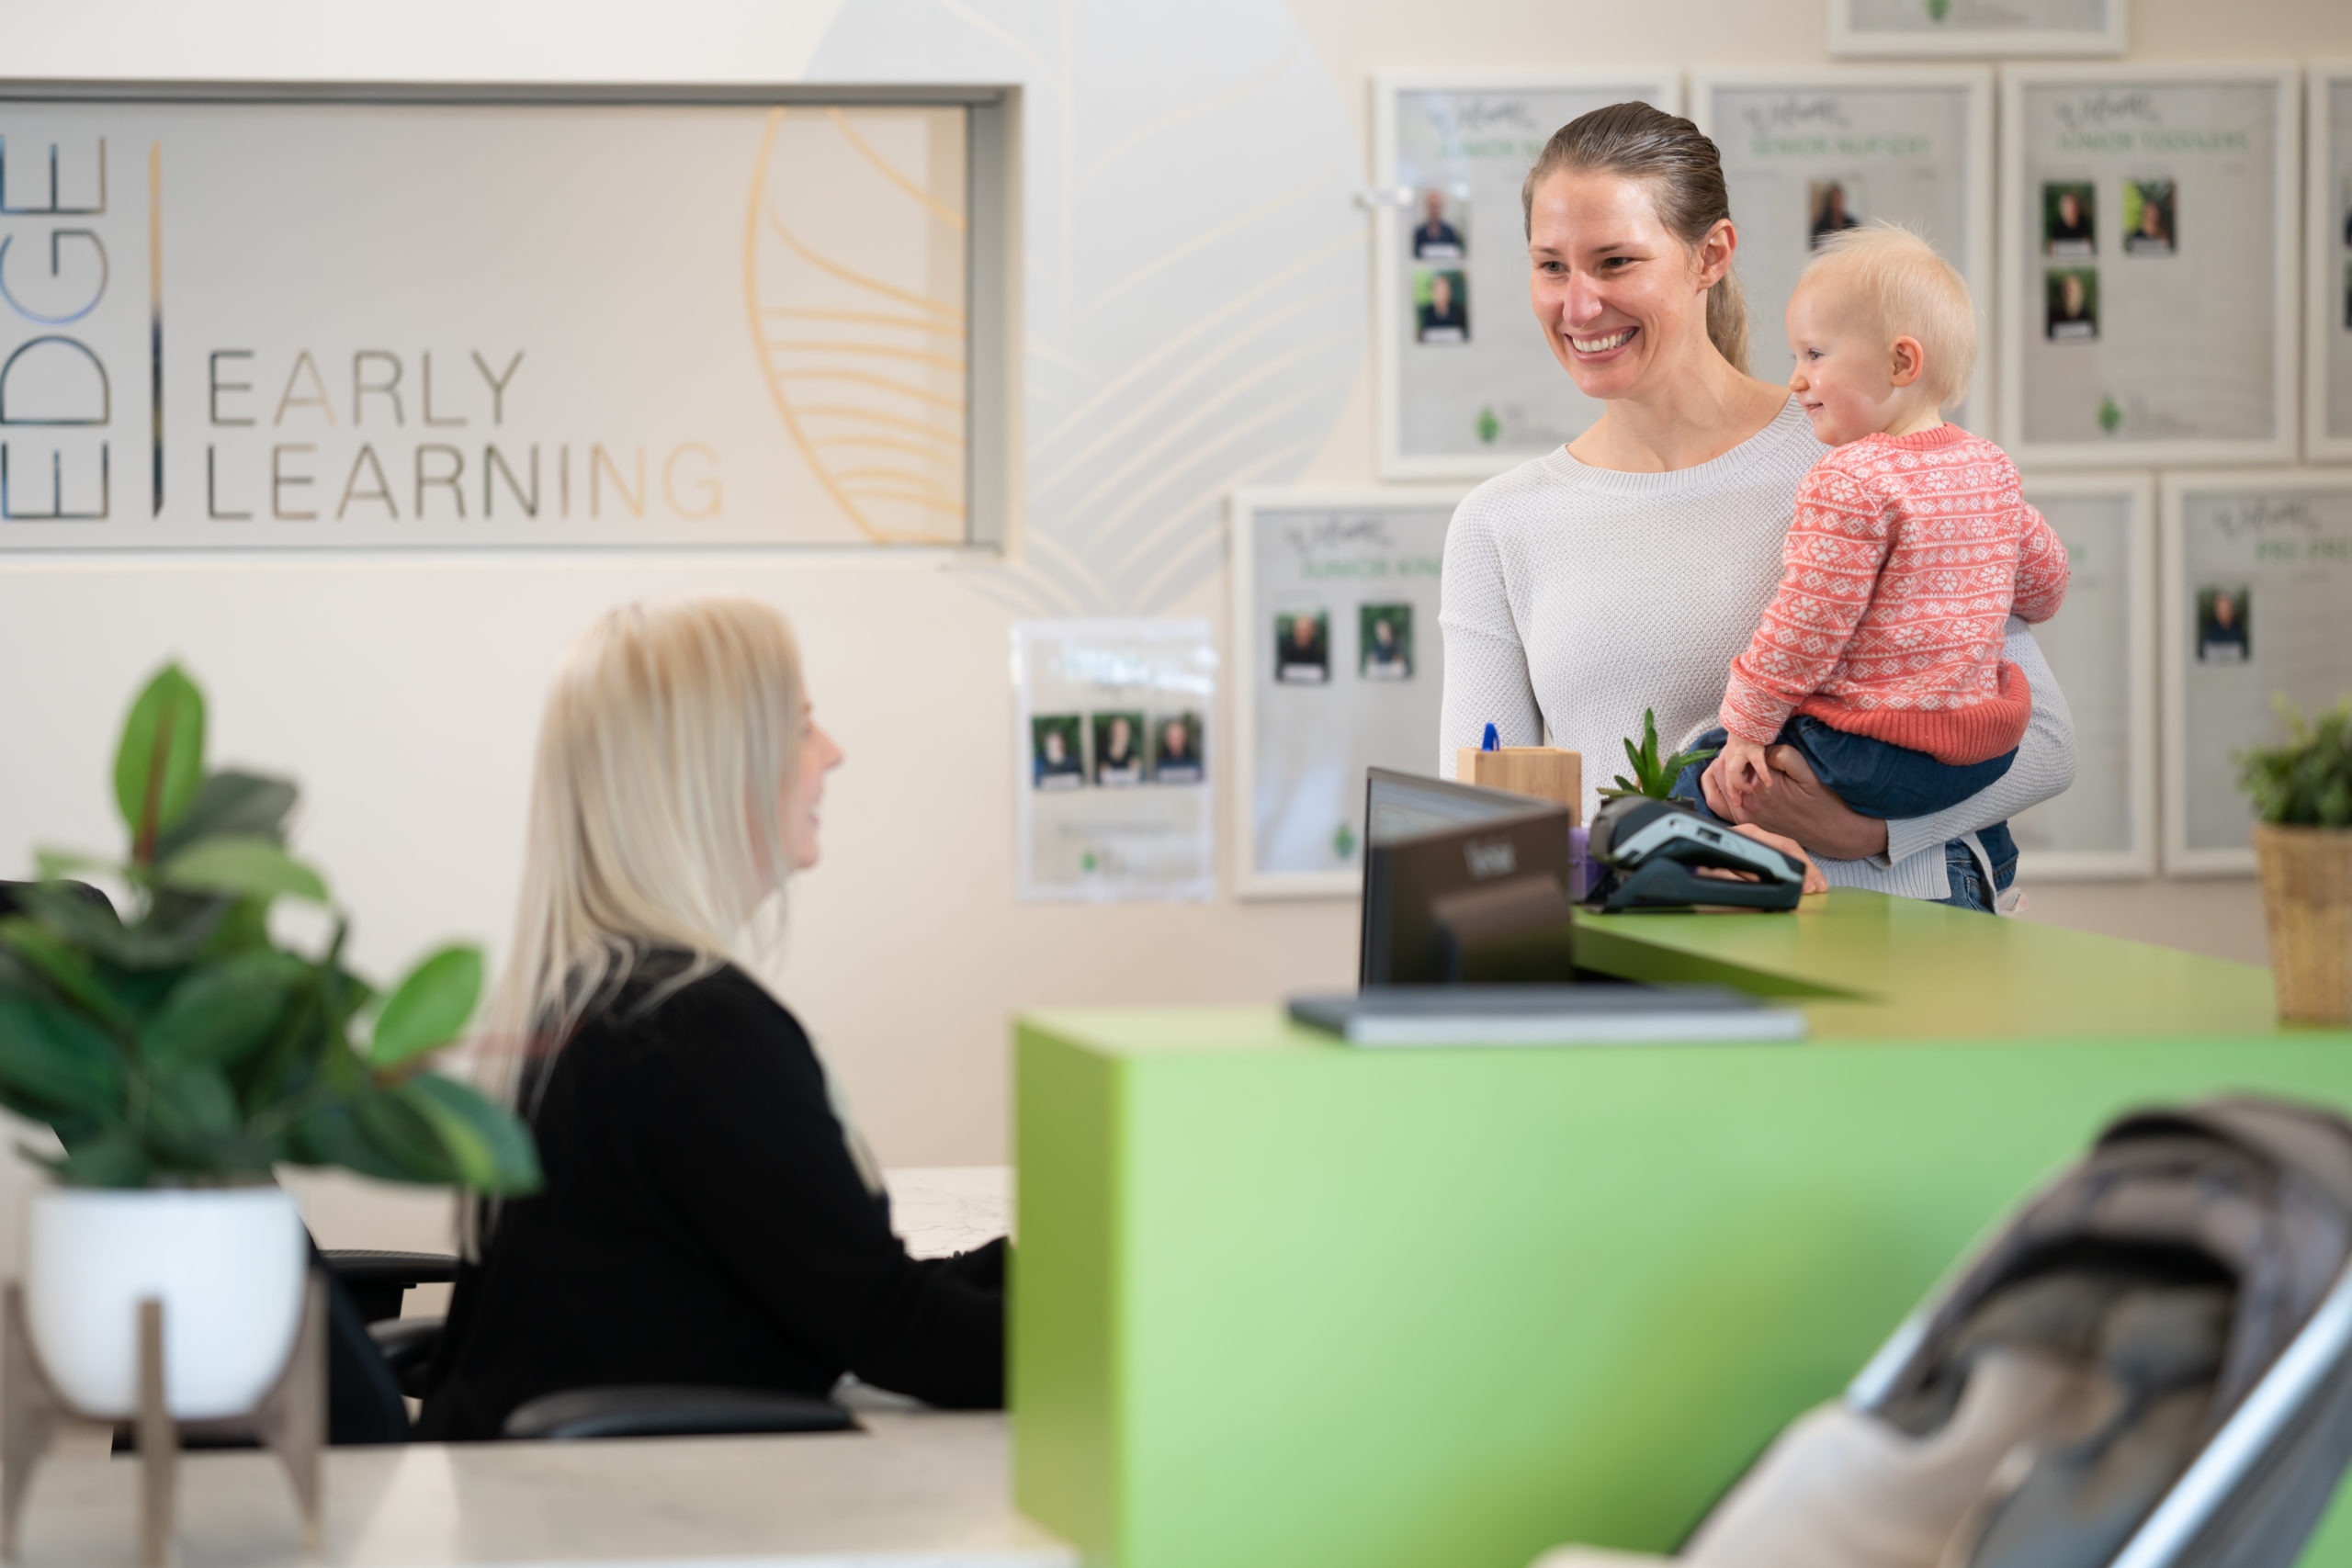 Mum checking in baby to Edge Early Learning